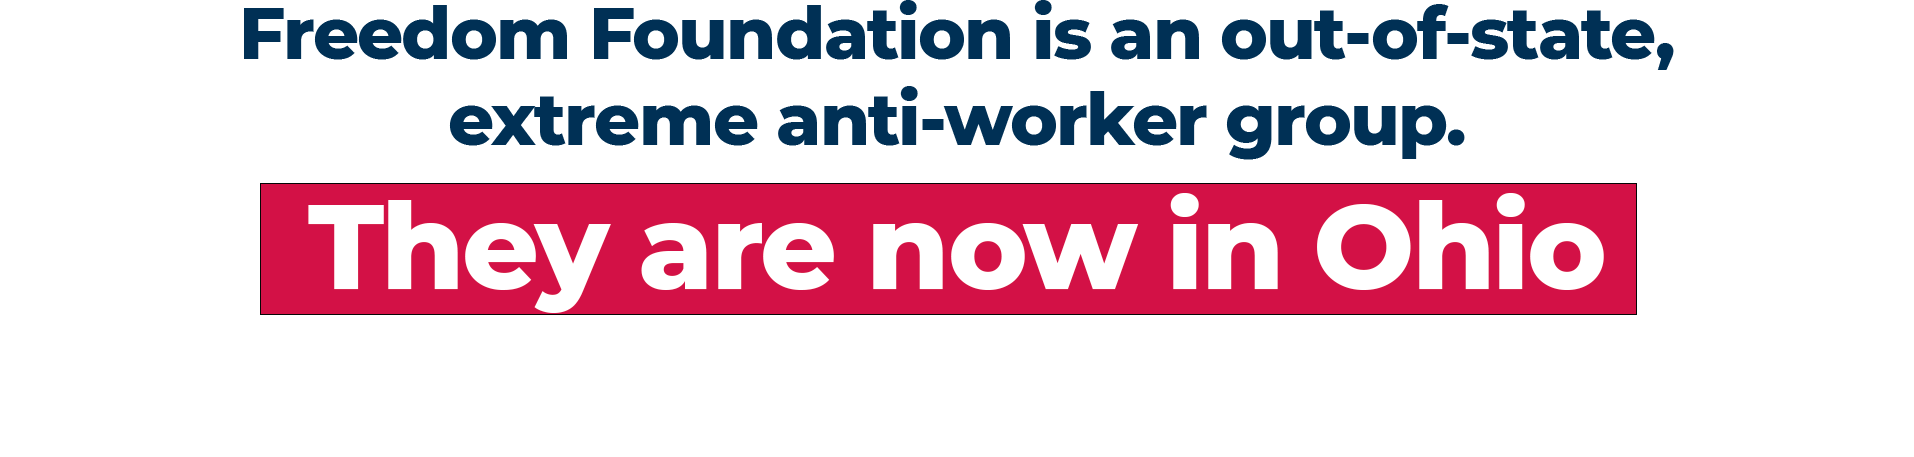 Freedom Foundation is an out-of-state, extreme anti-worker group. They are now in Ohio and they are openly anti-union.